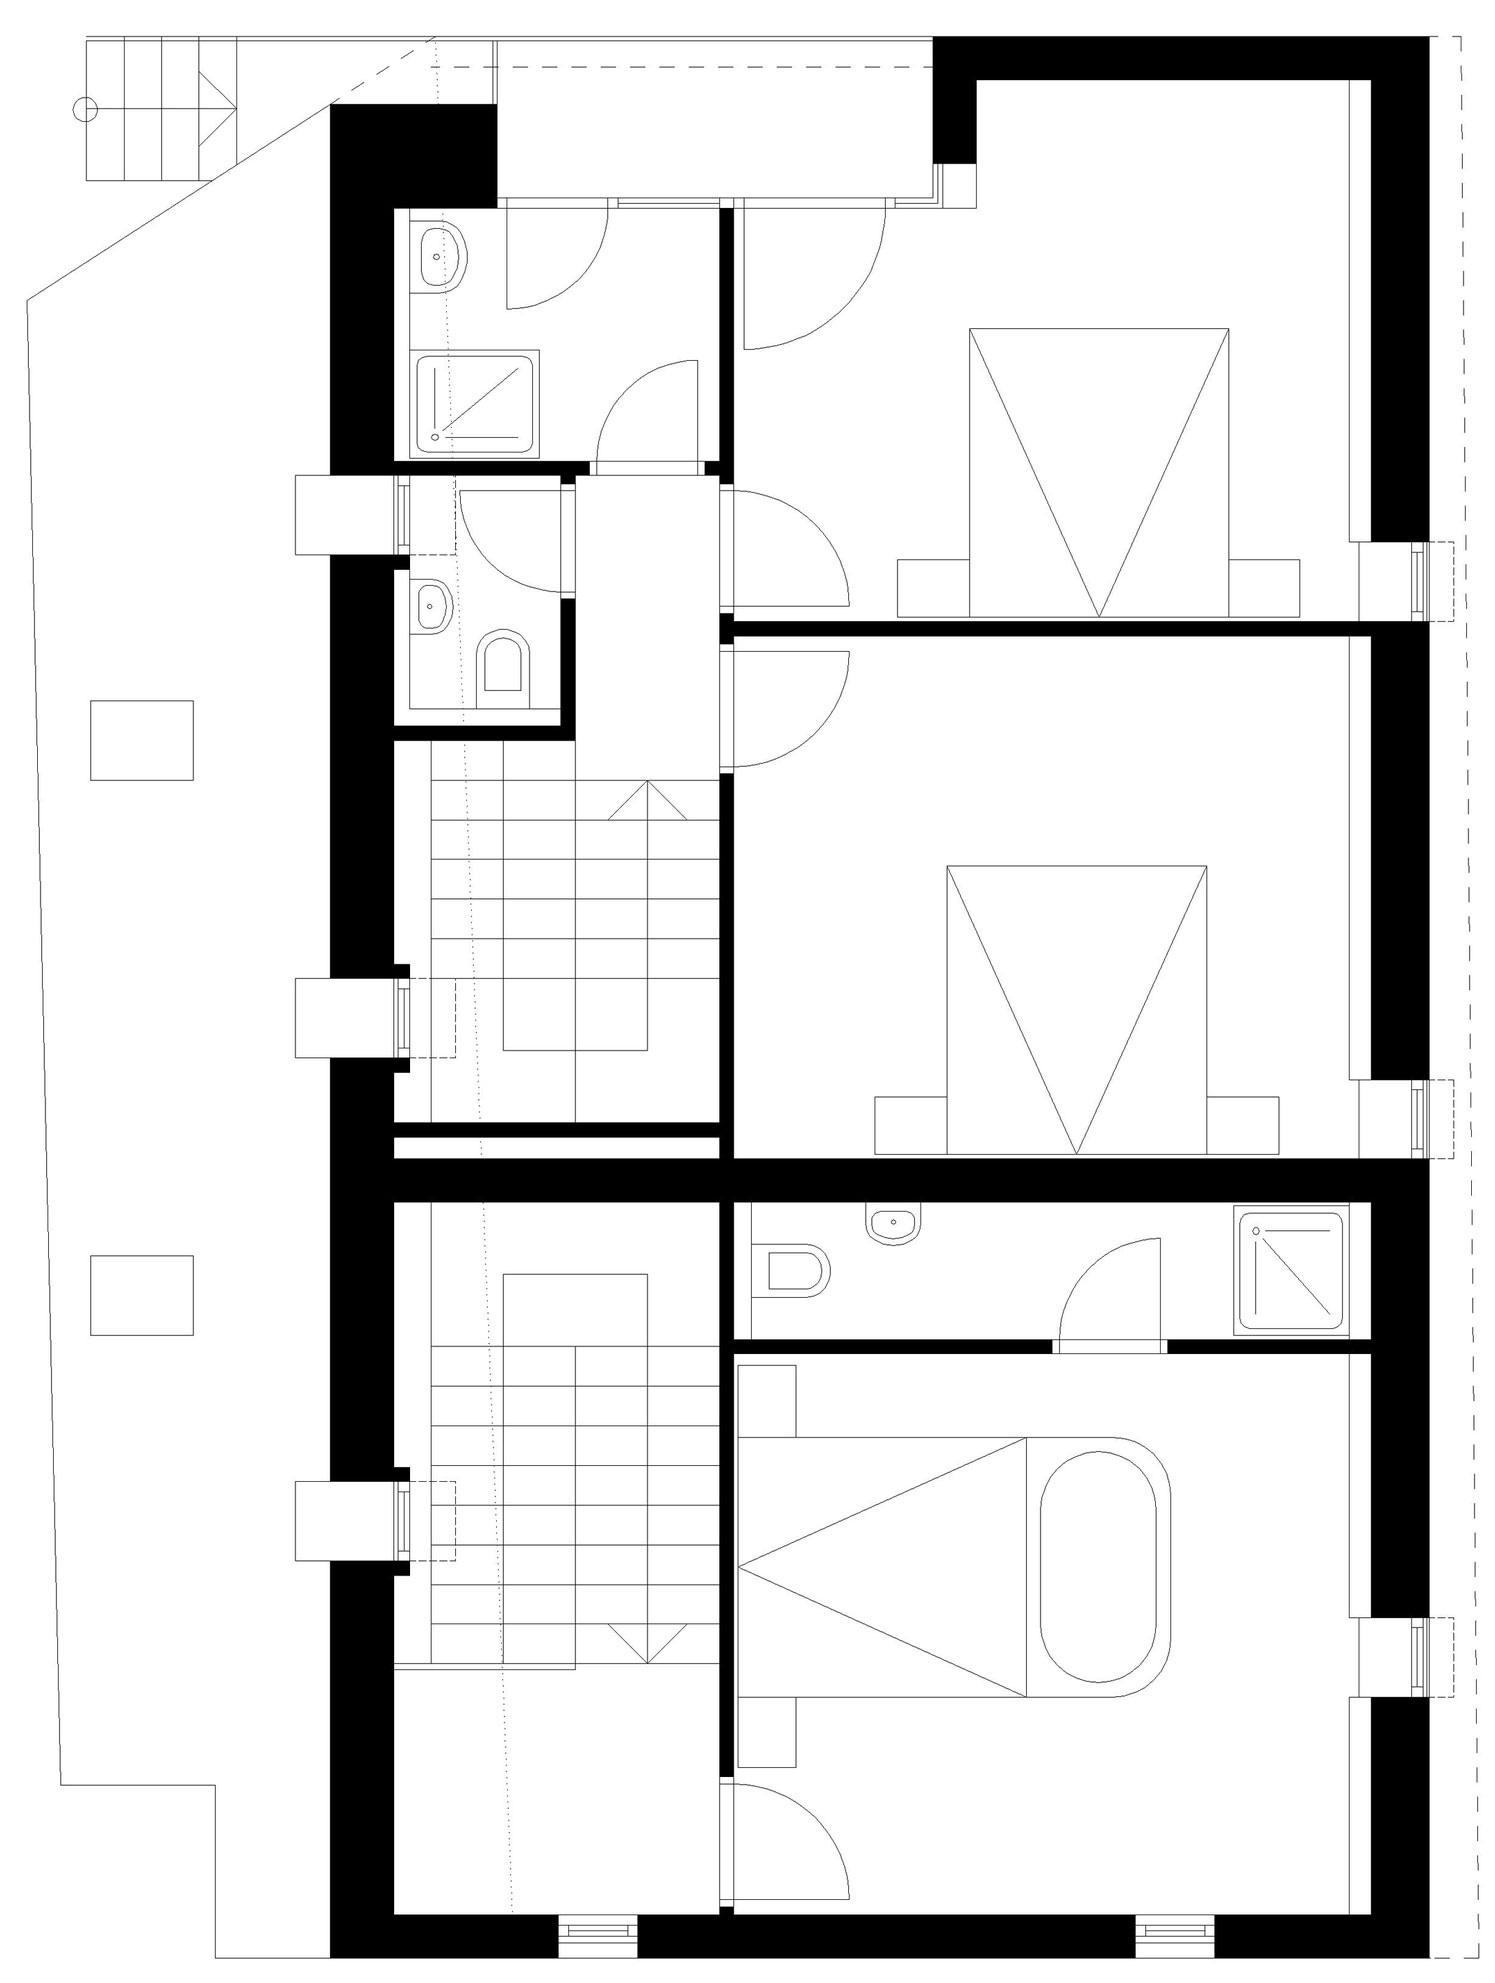 Second Floor Plan, Apartment House in Ybbsitz, Austria